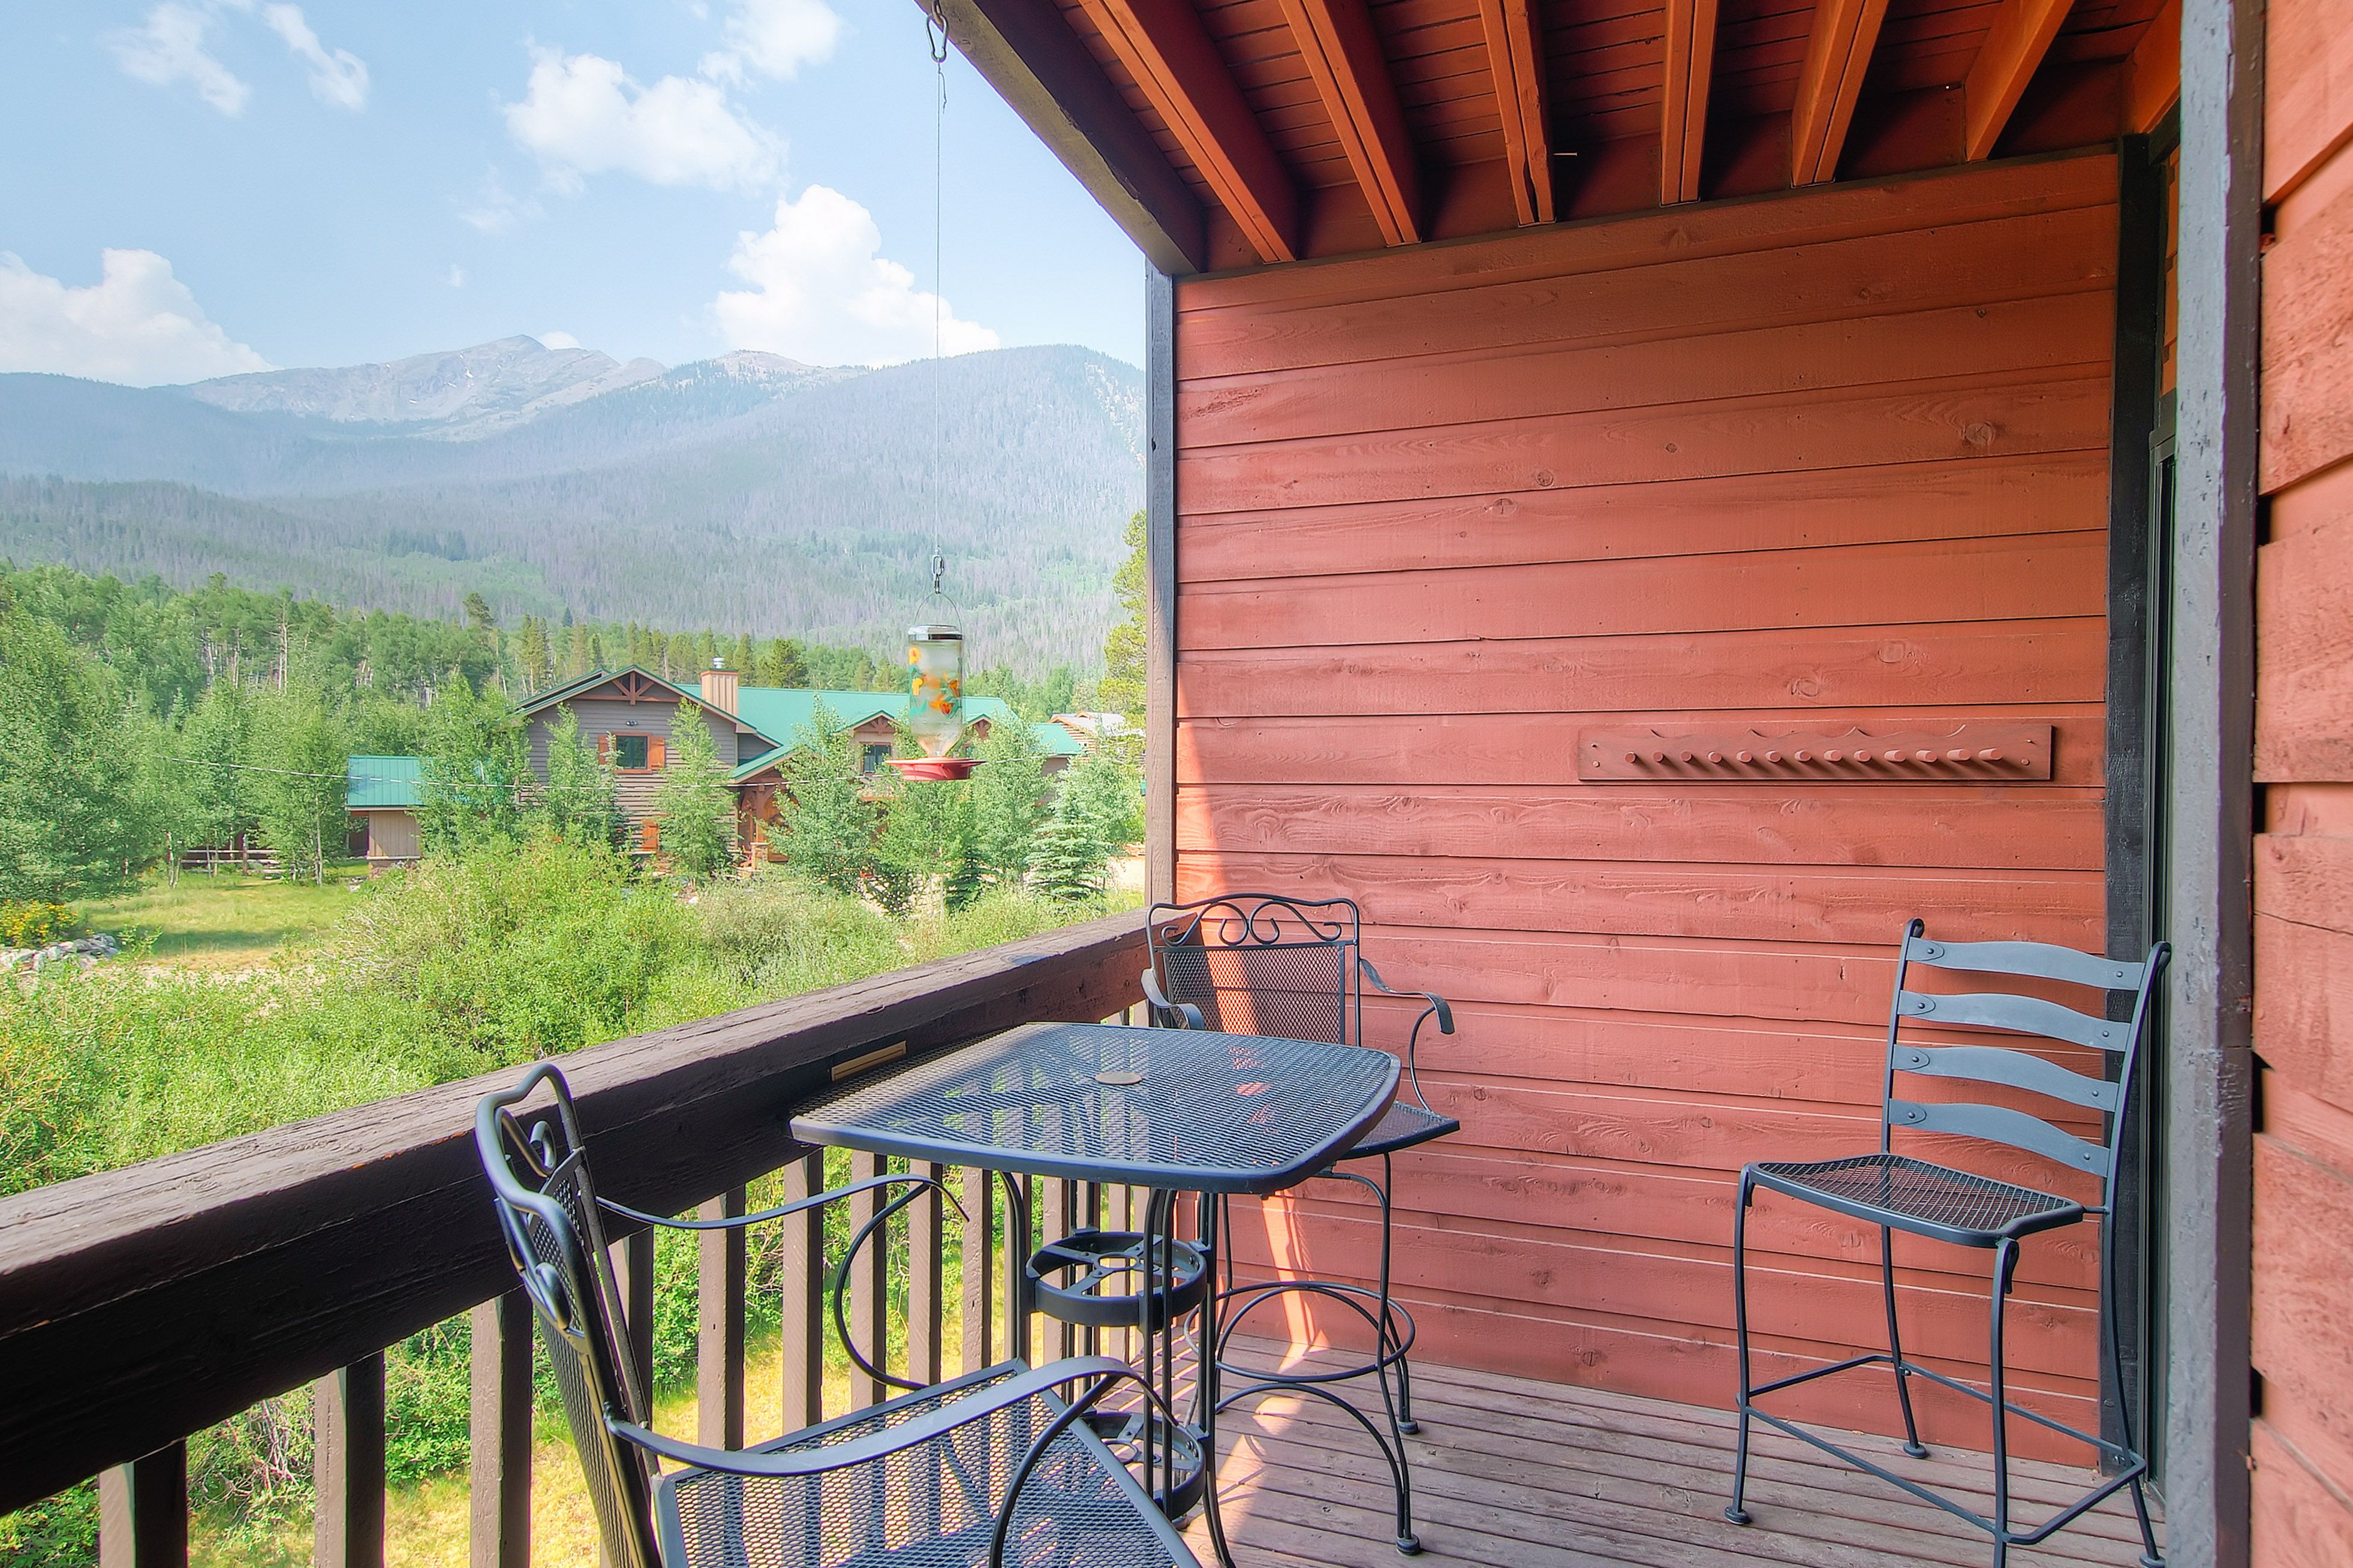 Mountainside Townhomes Located In Frisco Colorado Brought To You By Colorado Rocky Mountain Resorts Vacation Rentals Property Management